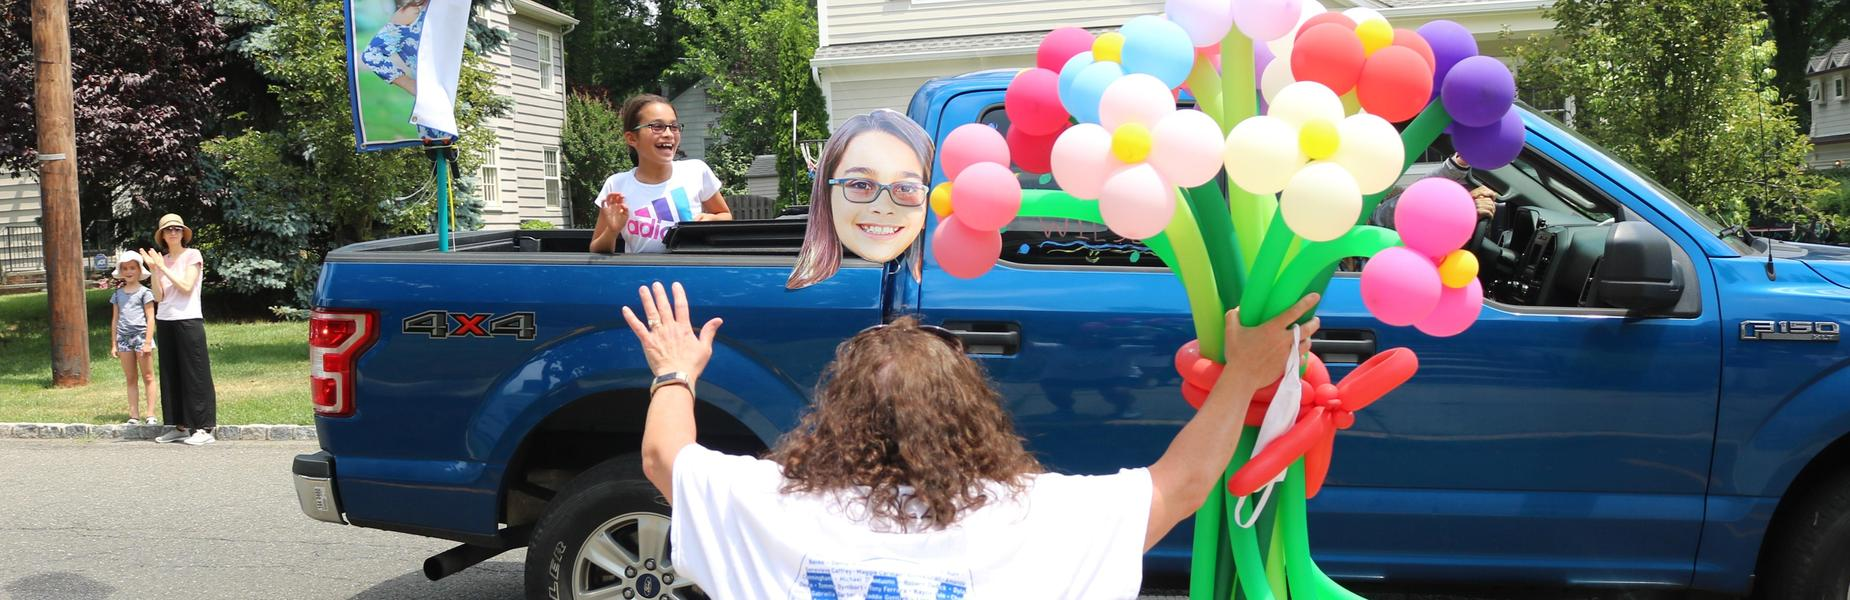 Photo of Wilson teacher with balloon bouquet waving at 5th grader during Grade 5 Clap Out Car Parade.